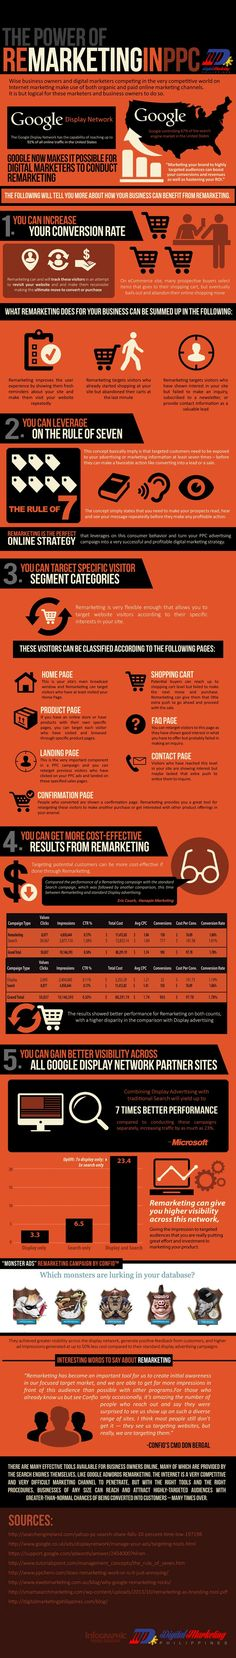 What Is Remarketing And How Does It Work With Google? #infographic